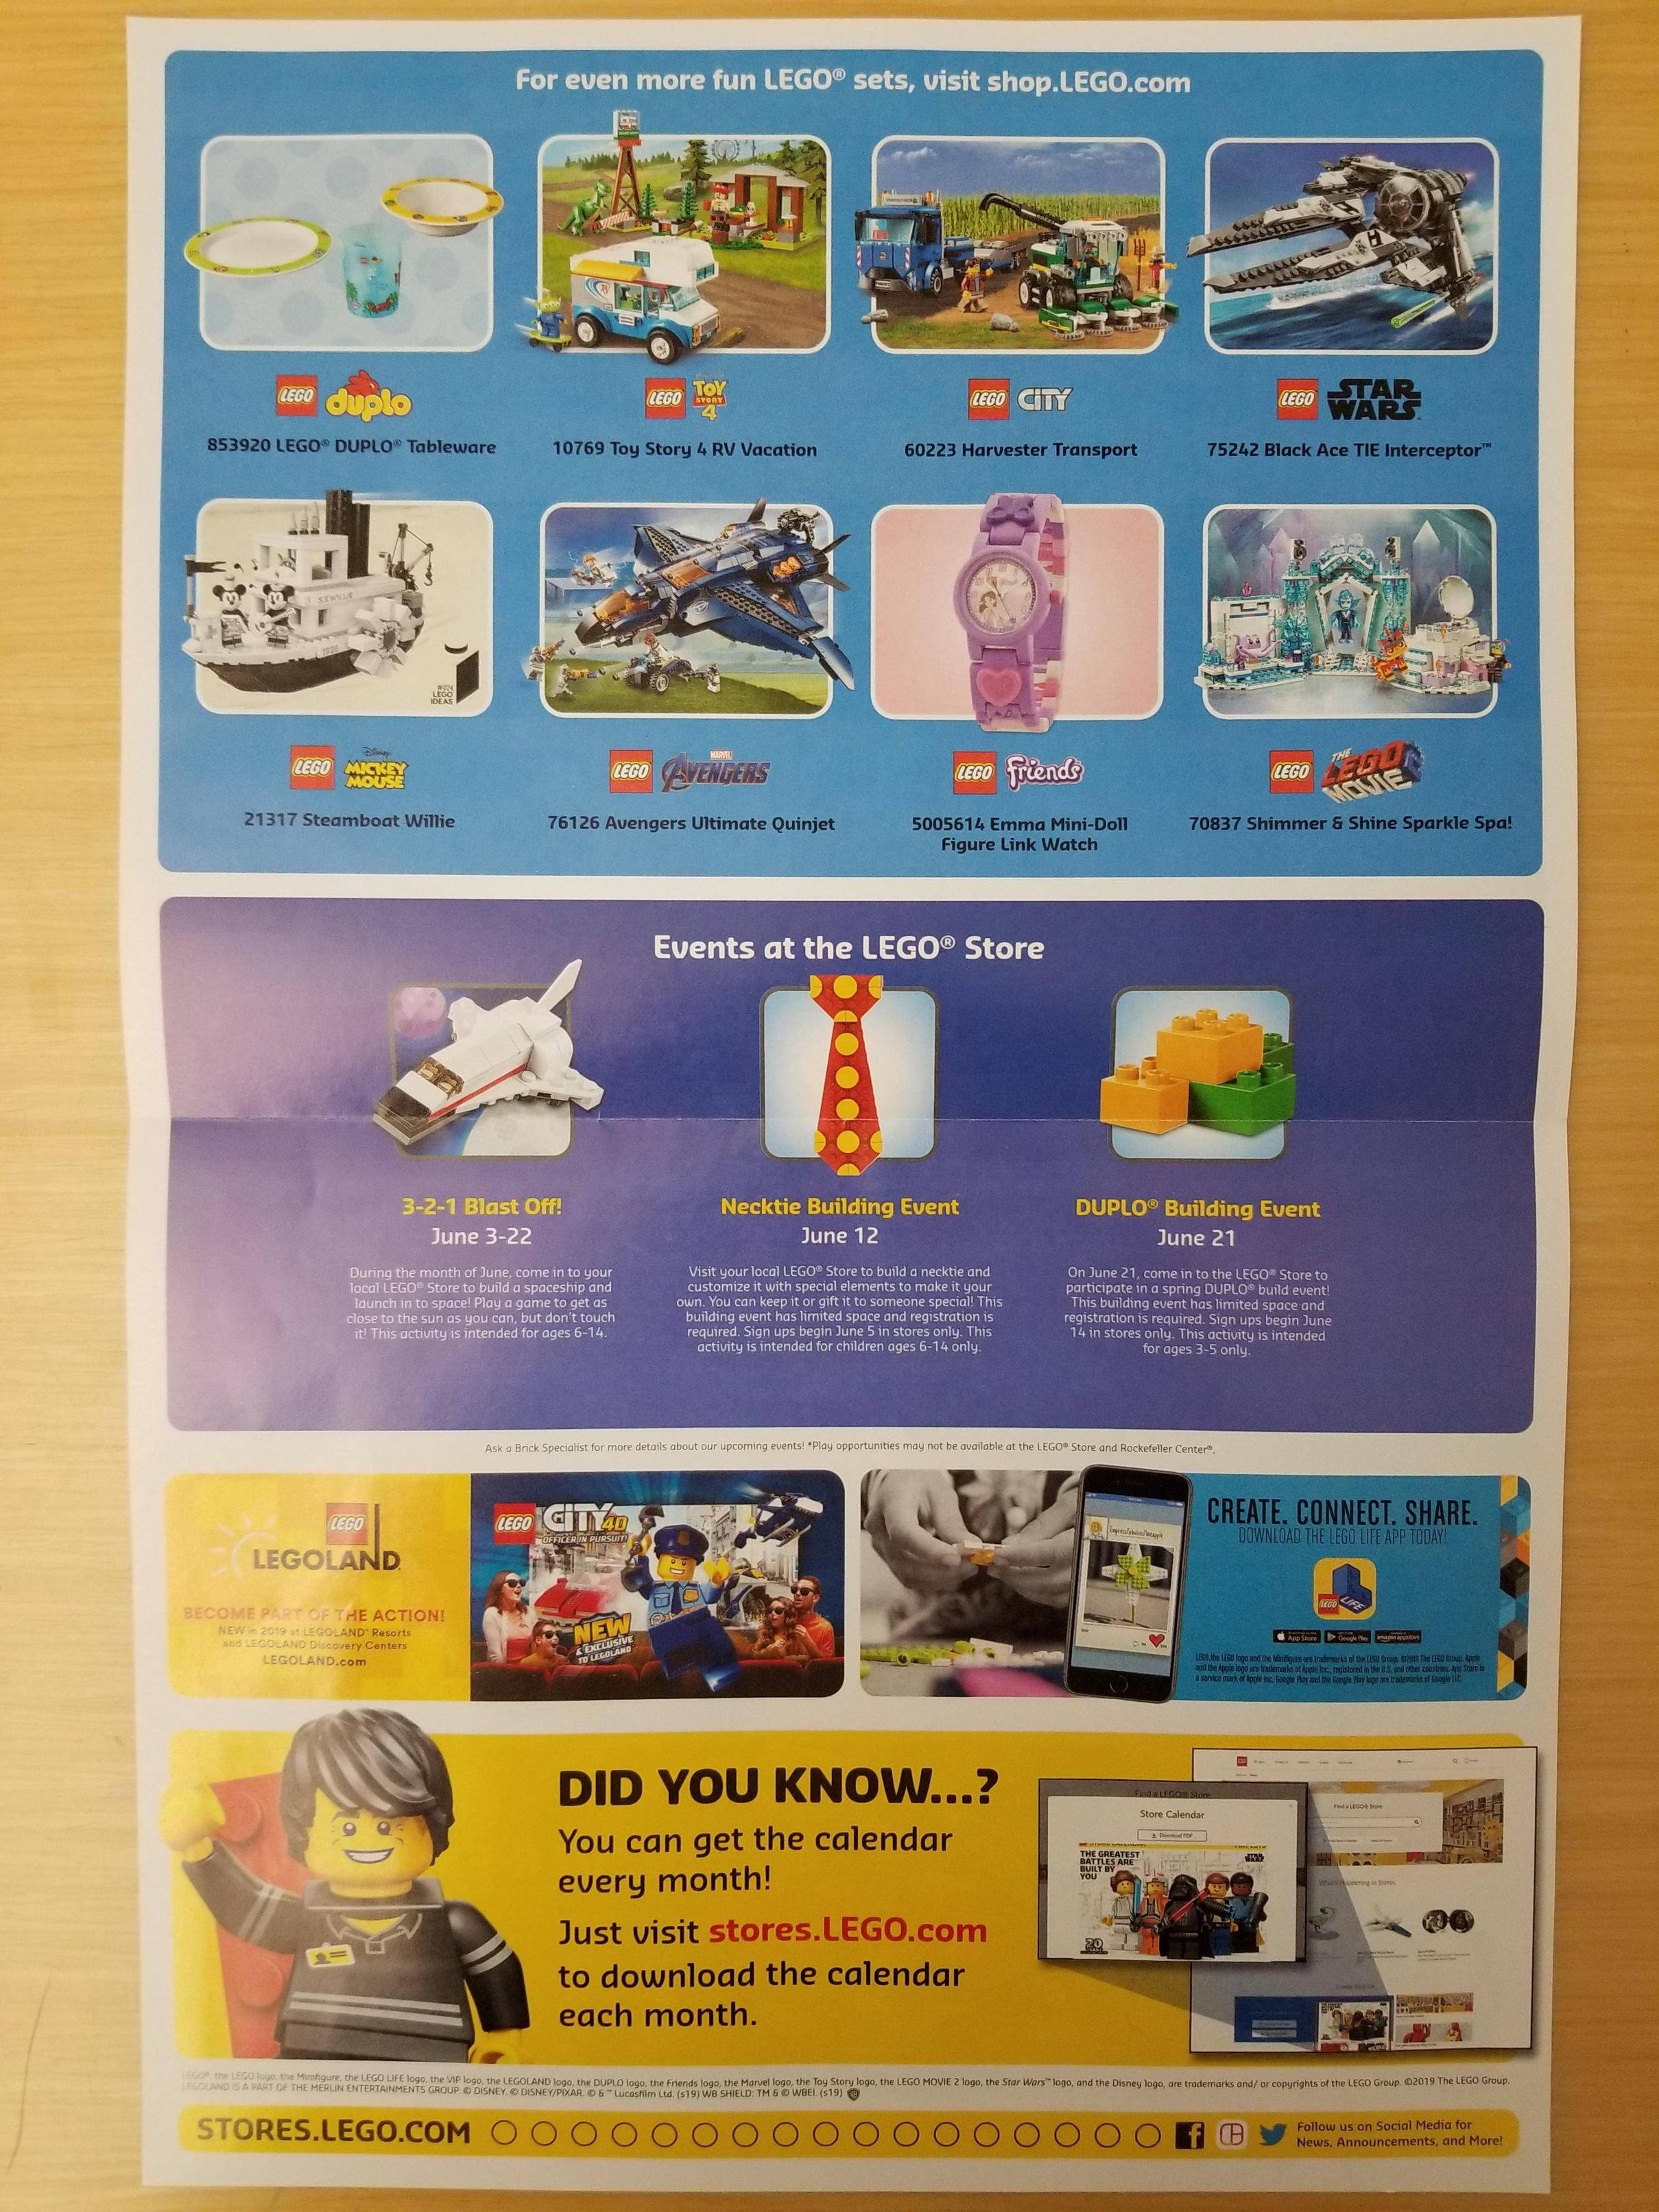 Lego June 2019 Store Calendar Events - The Brick Fan Calendar 2019 In Stores